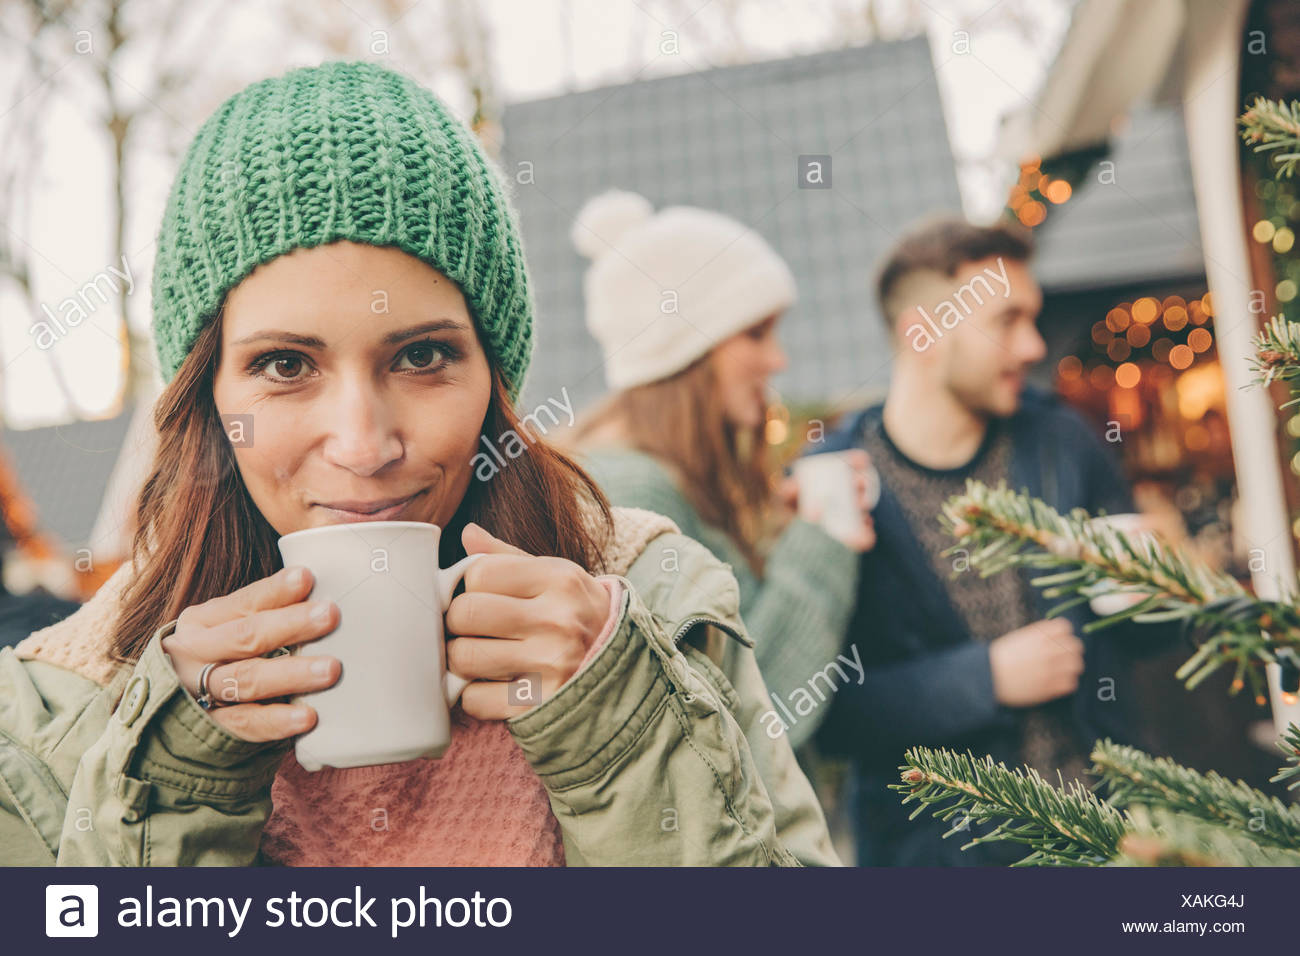 Woman having a hot punch on the Christmas Market - Stock Image